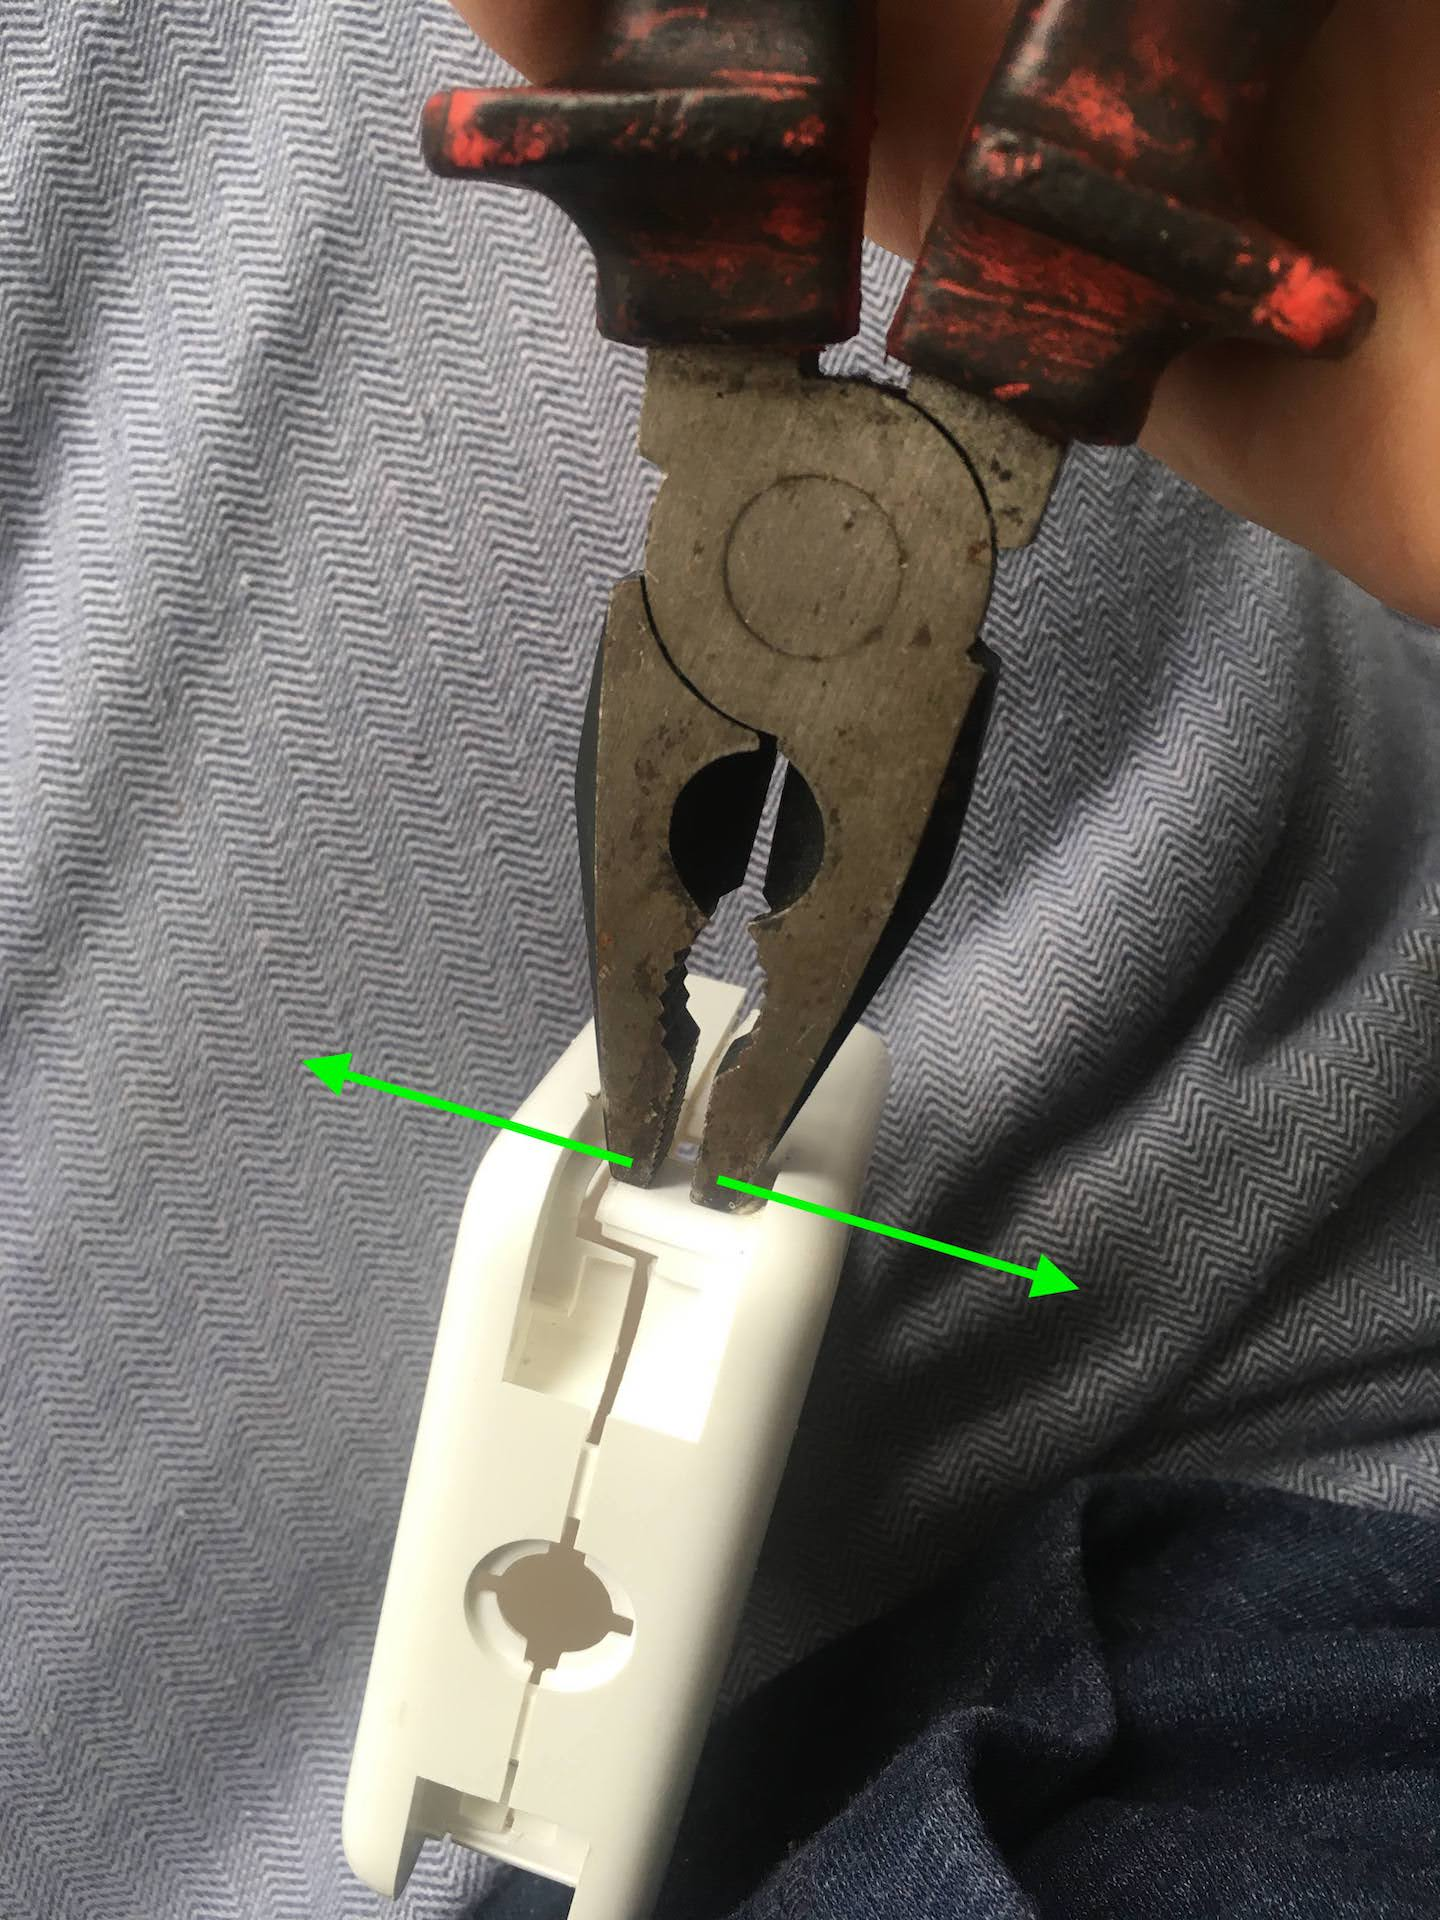 Using flat head pliers to open a MacBook Charger